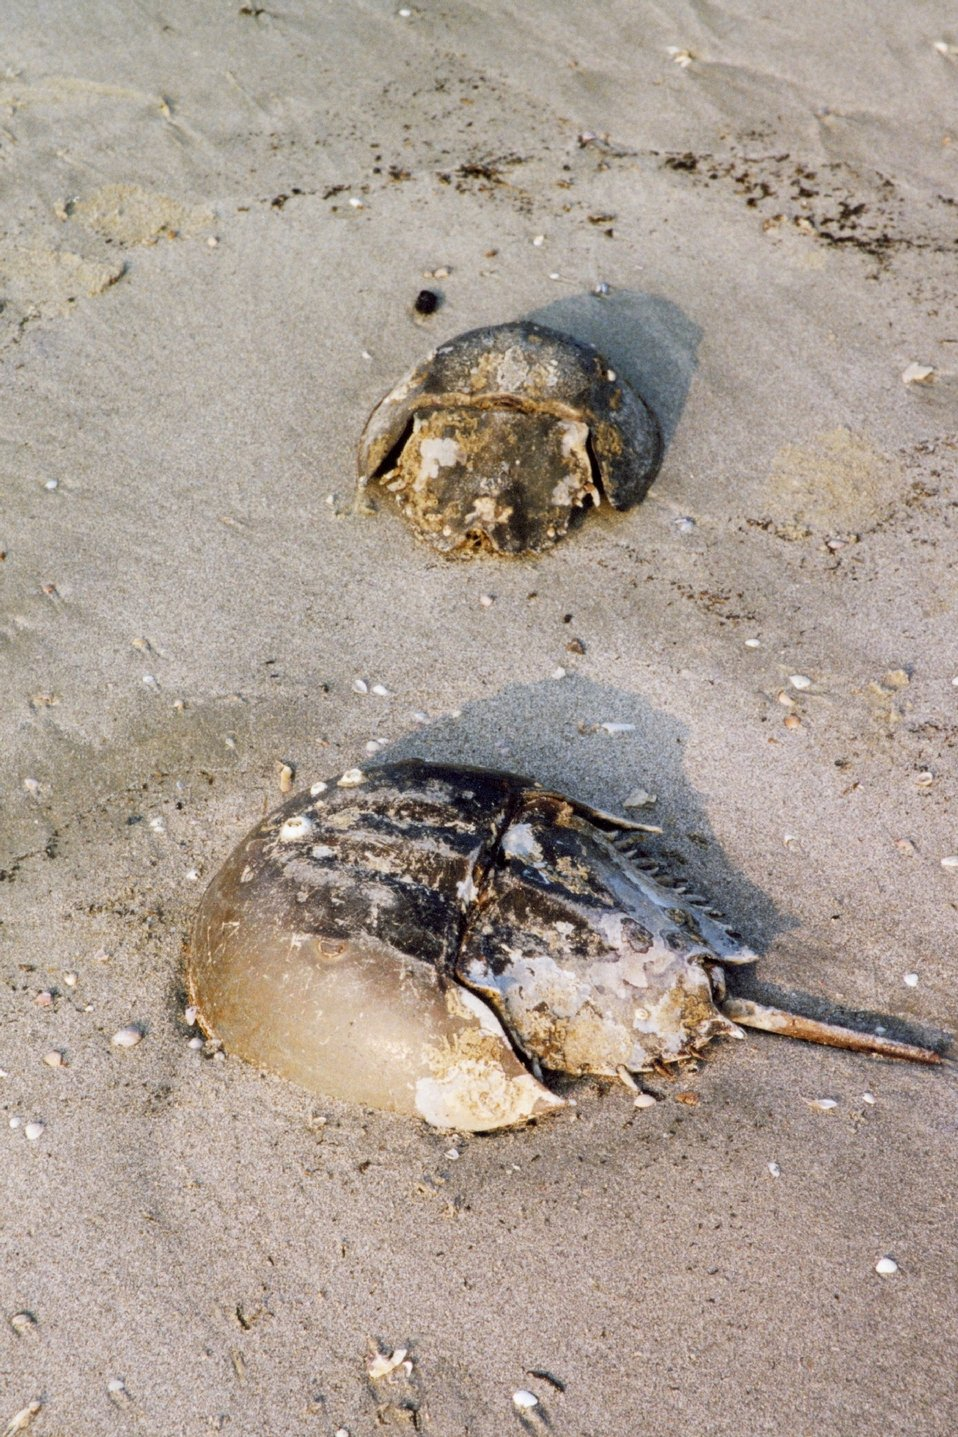 Horseshoe crab carapaces washed up on the beach.